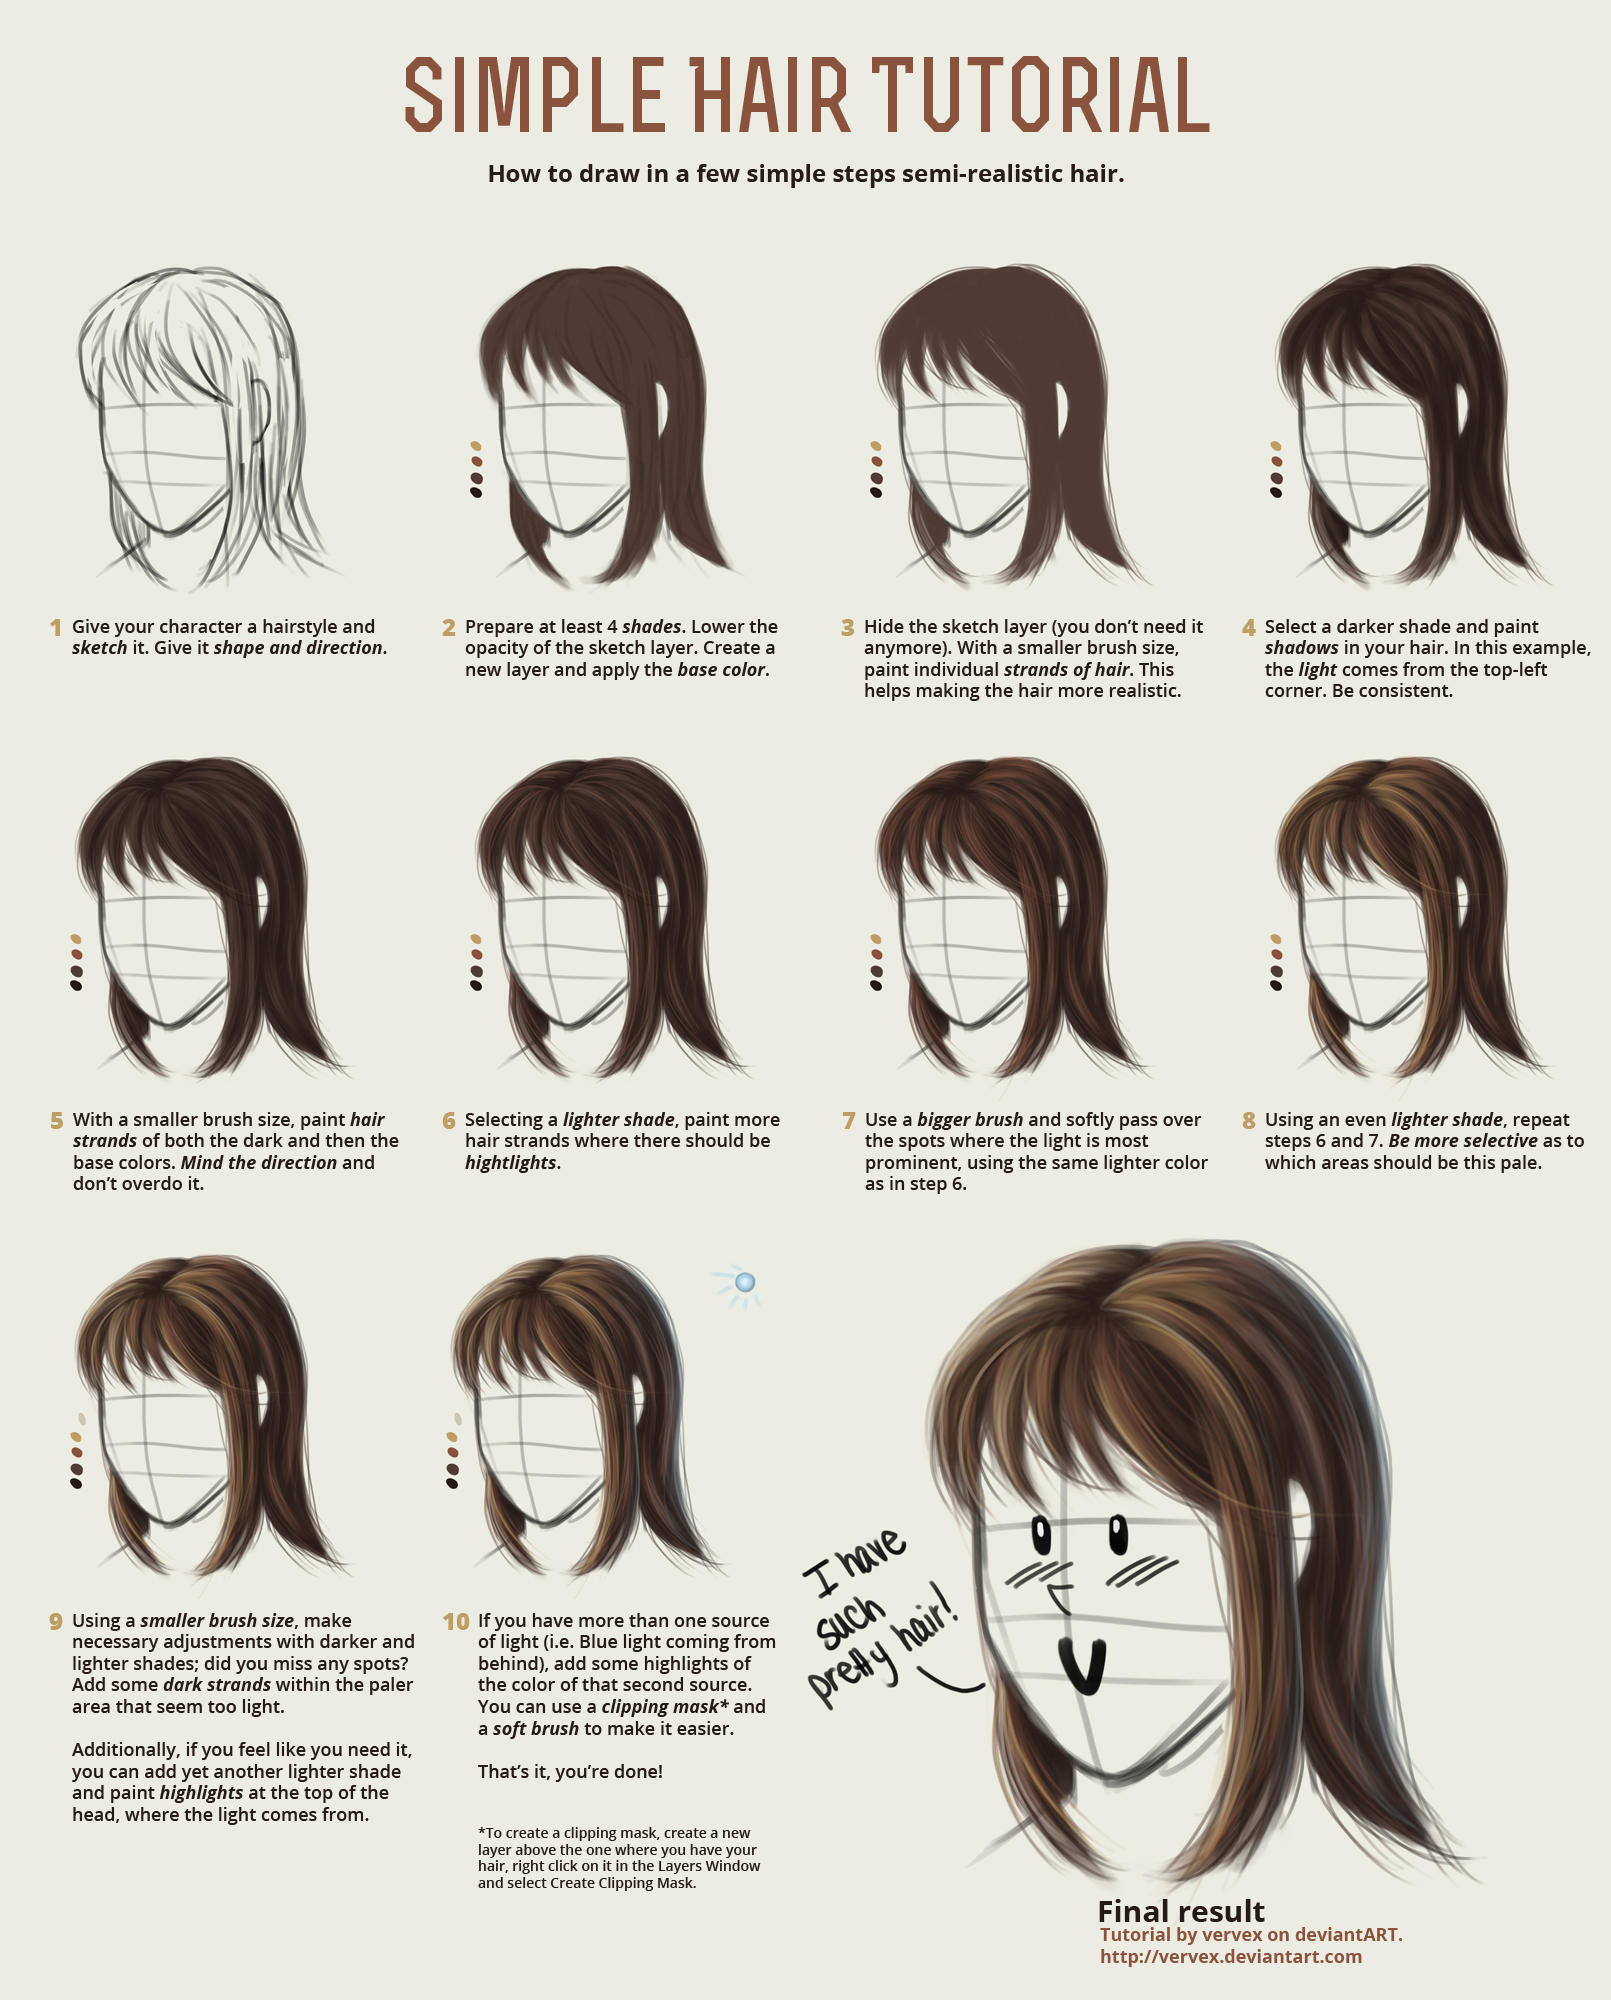 Simple Hair Tutorial by vervex